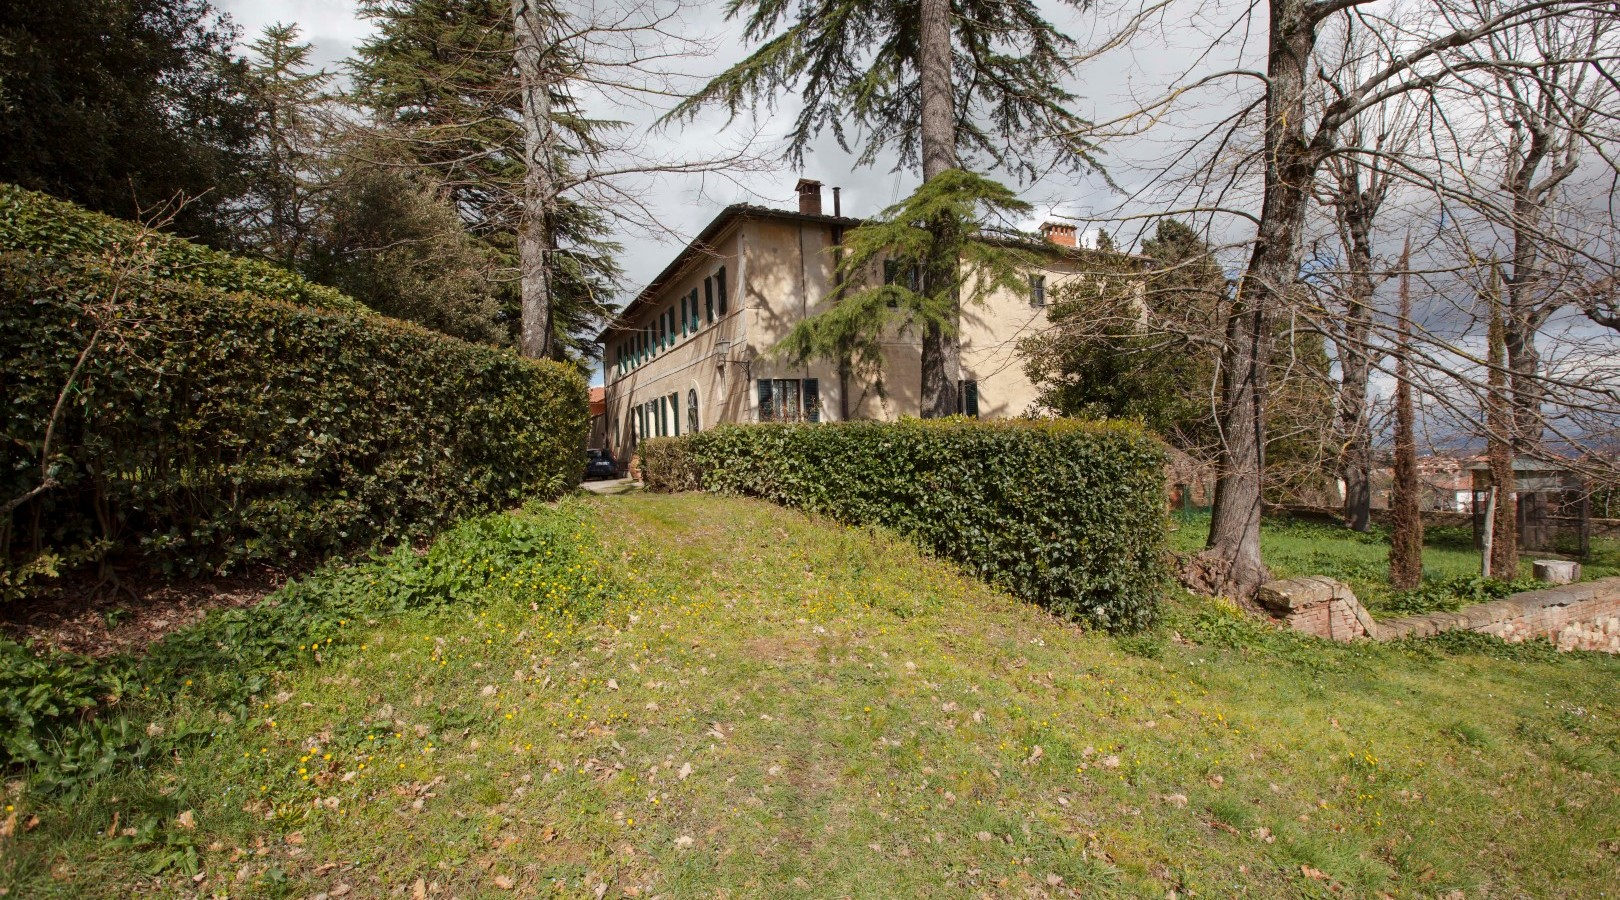 Tuscany, Siena luxory villas for sale -Az.224